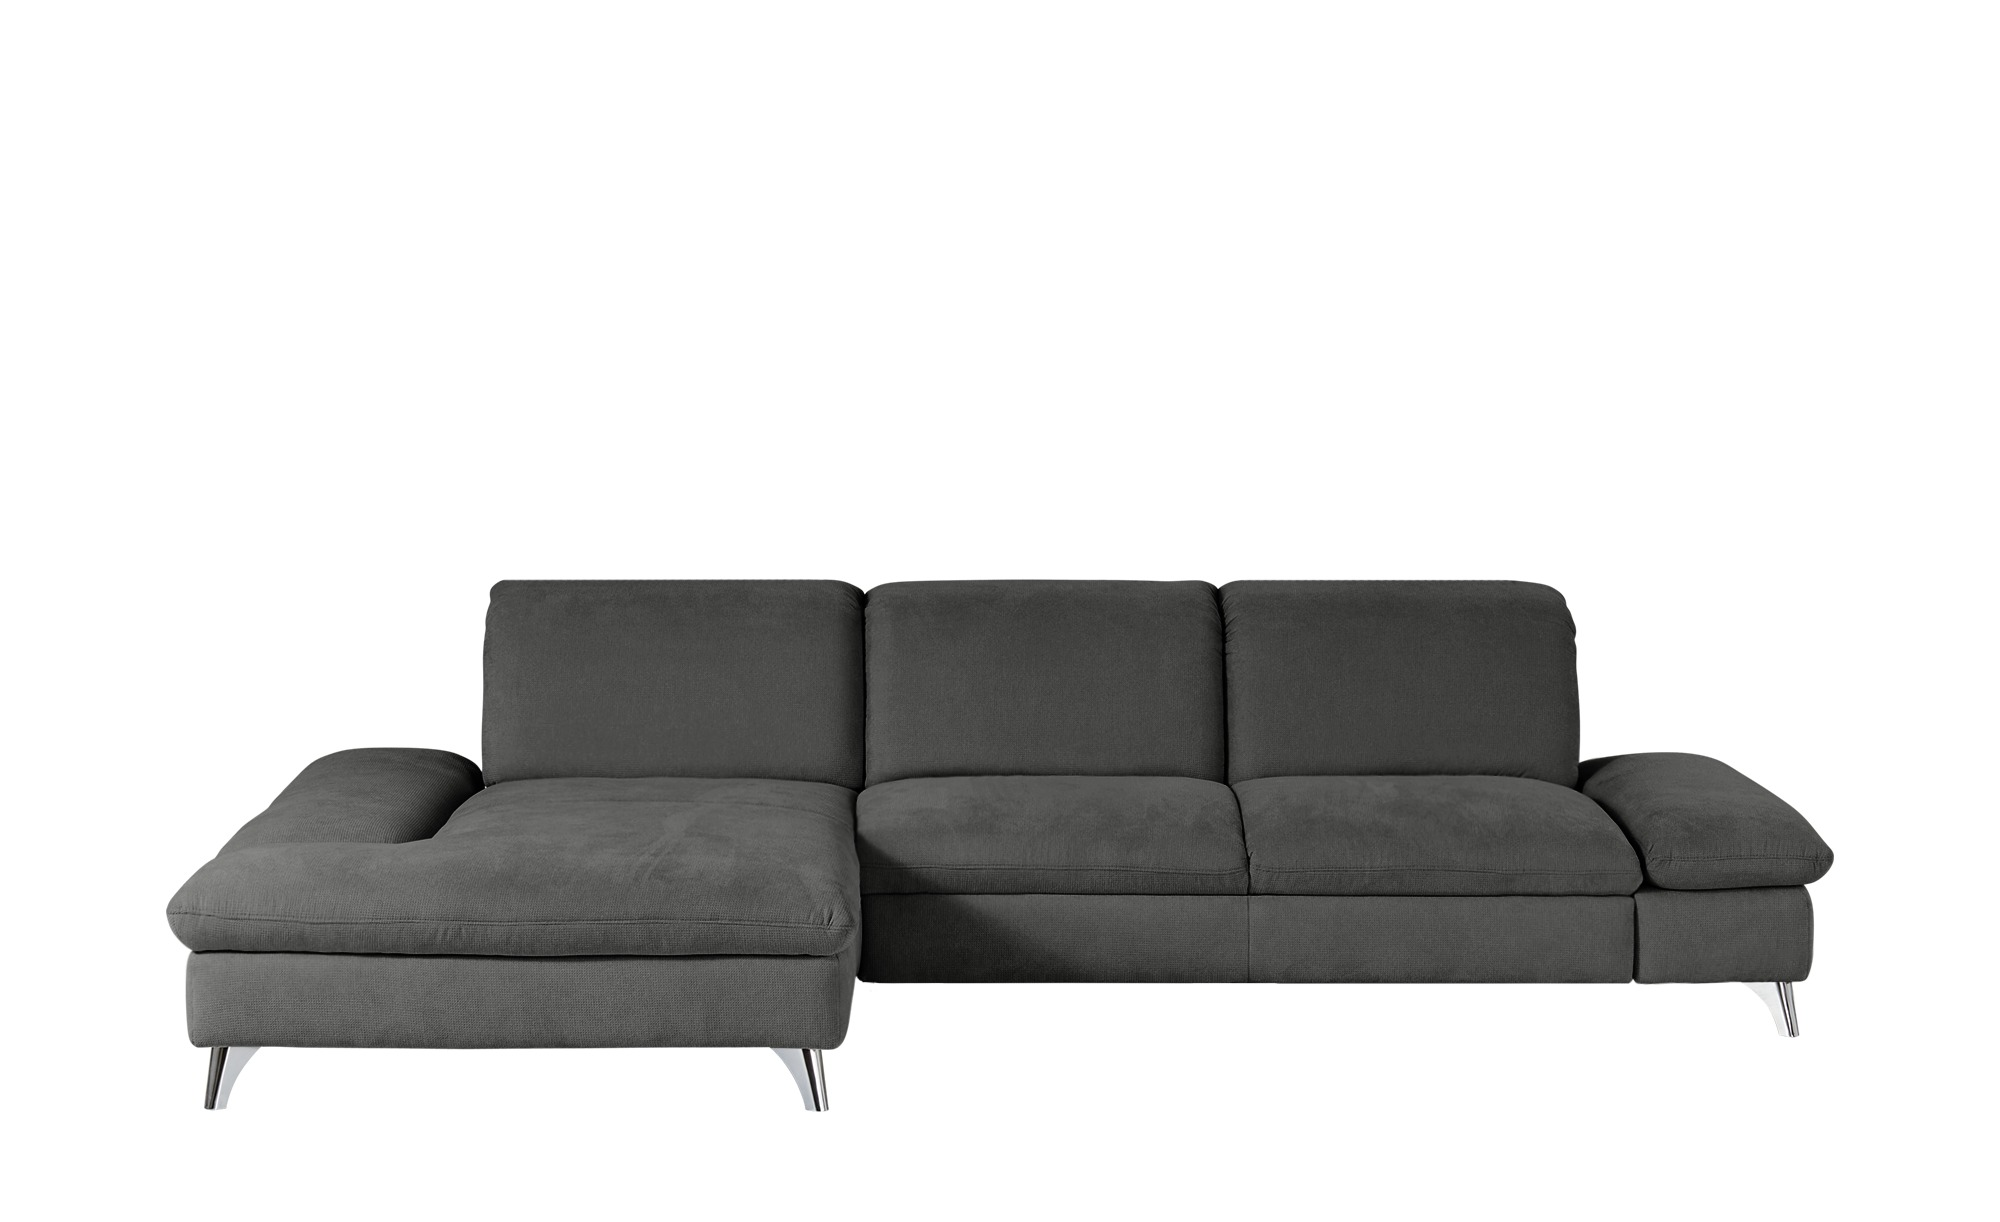 Ecksofa Sectional Couch Sofa Couch